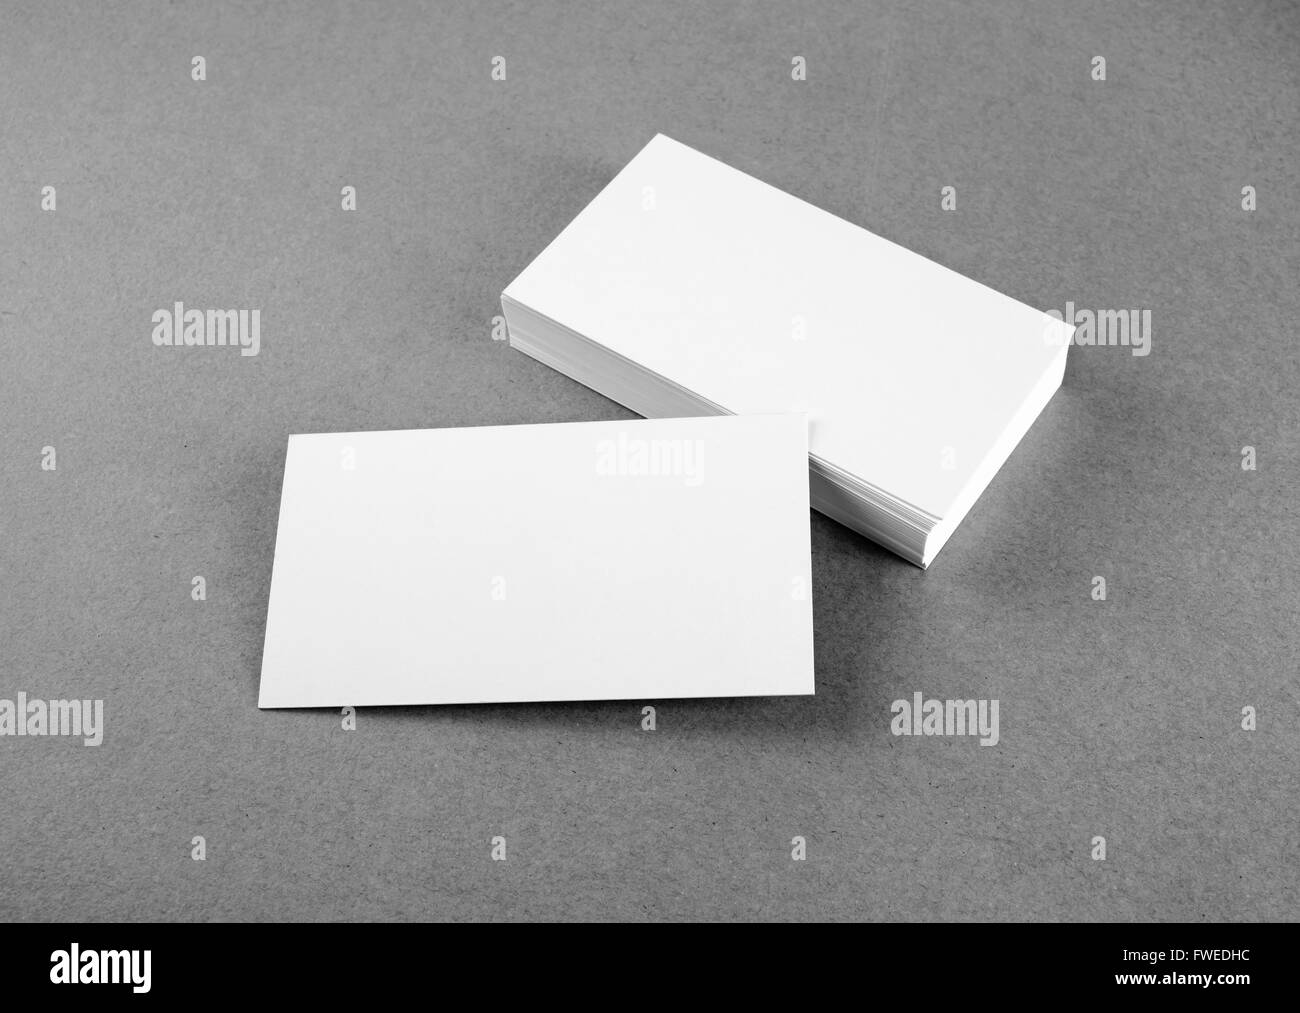 Blank Business Cards Template On Gray Background. Mockup For Branding  Identity For Designers. Black And White Image.